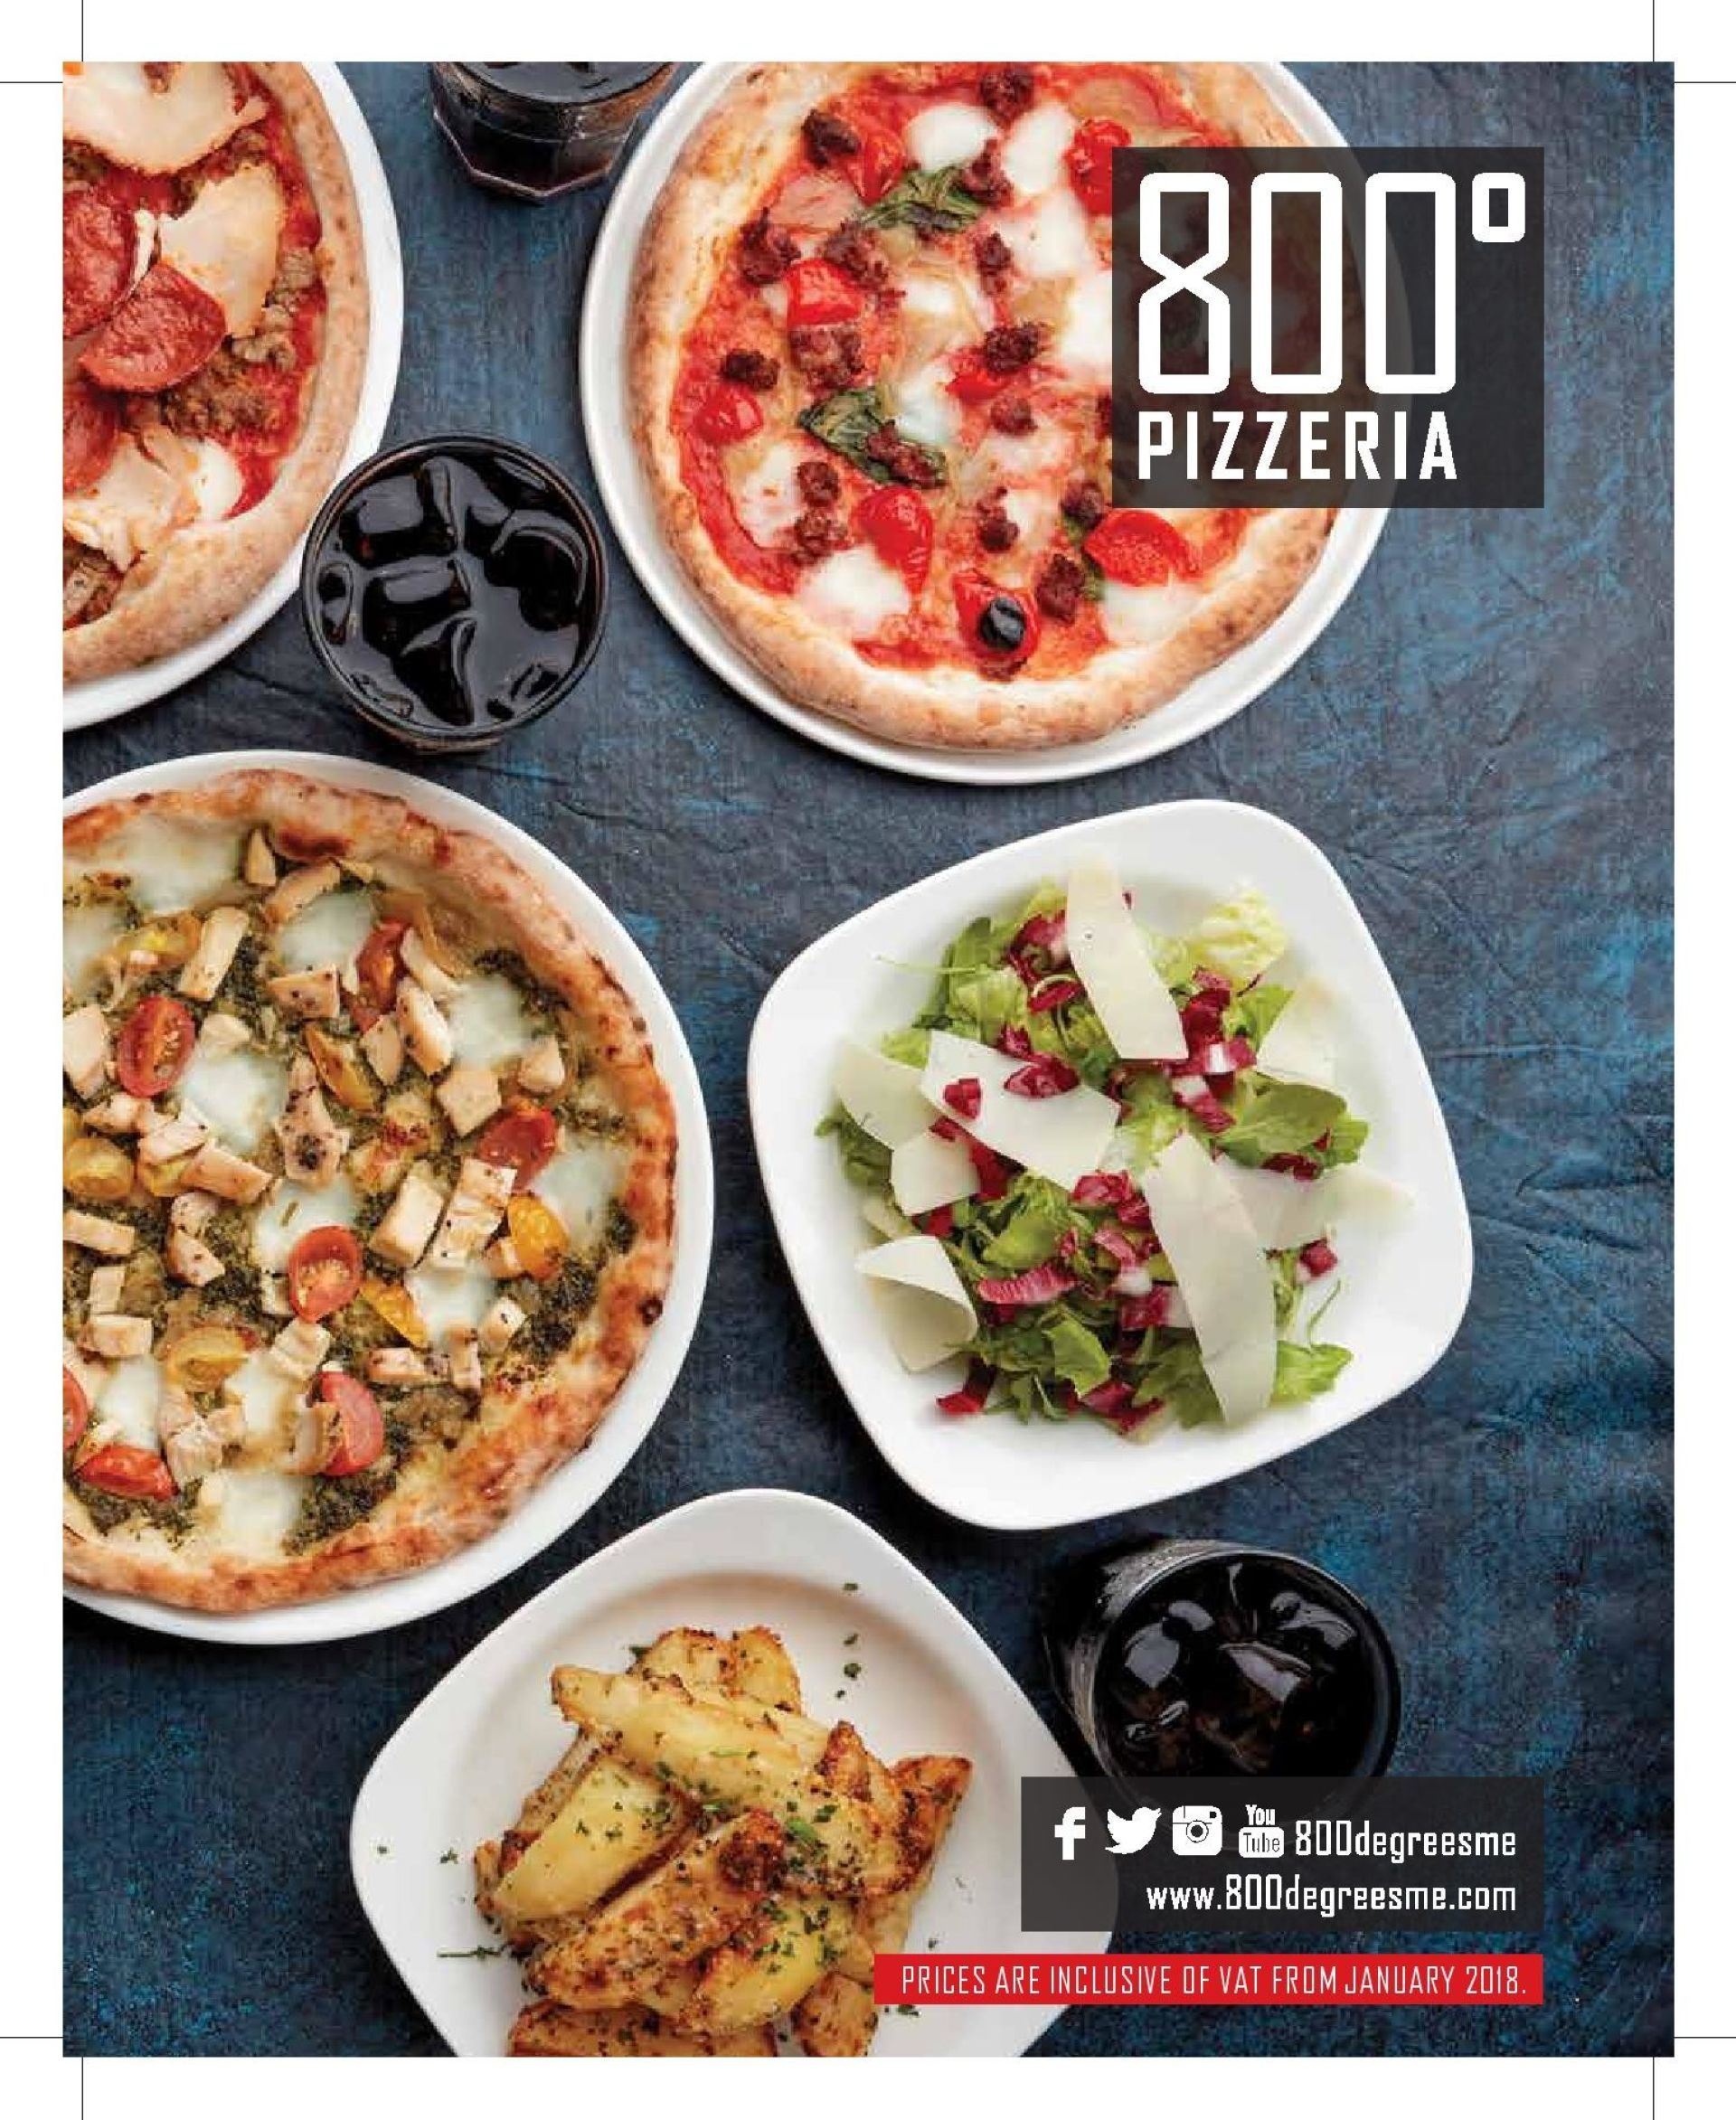 Menu of the 800 Degrees Neapolitan Pizzeria